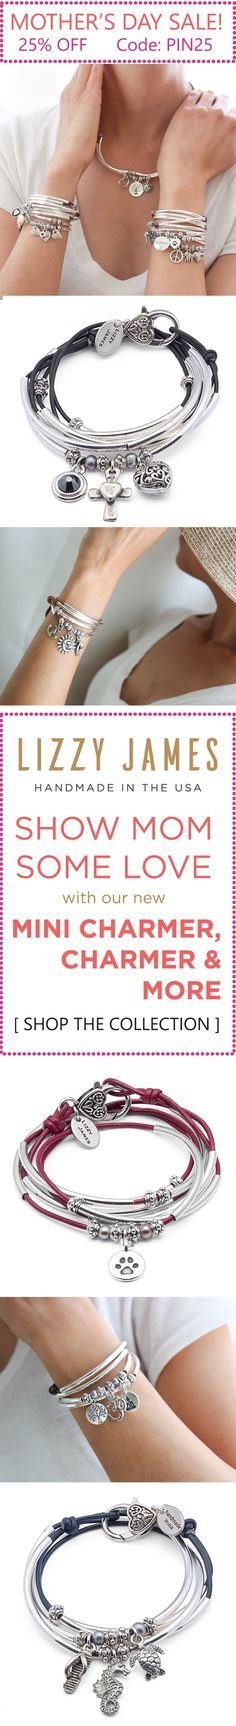 Lizzy James NEW Arrivals plus online exclusives just in time for Mother's Day! Get 25% OFF with CODE: PIN25 plus Free Shipping during our Mother's Day Sale. With great Mothers Day gift ideas featuring NEW charm bracelet wrap bracelets - Mini Charmer, Charmer and more. Handcrafted in the USA. #MadeInUSA